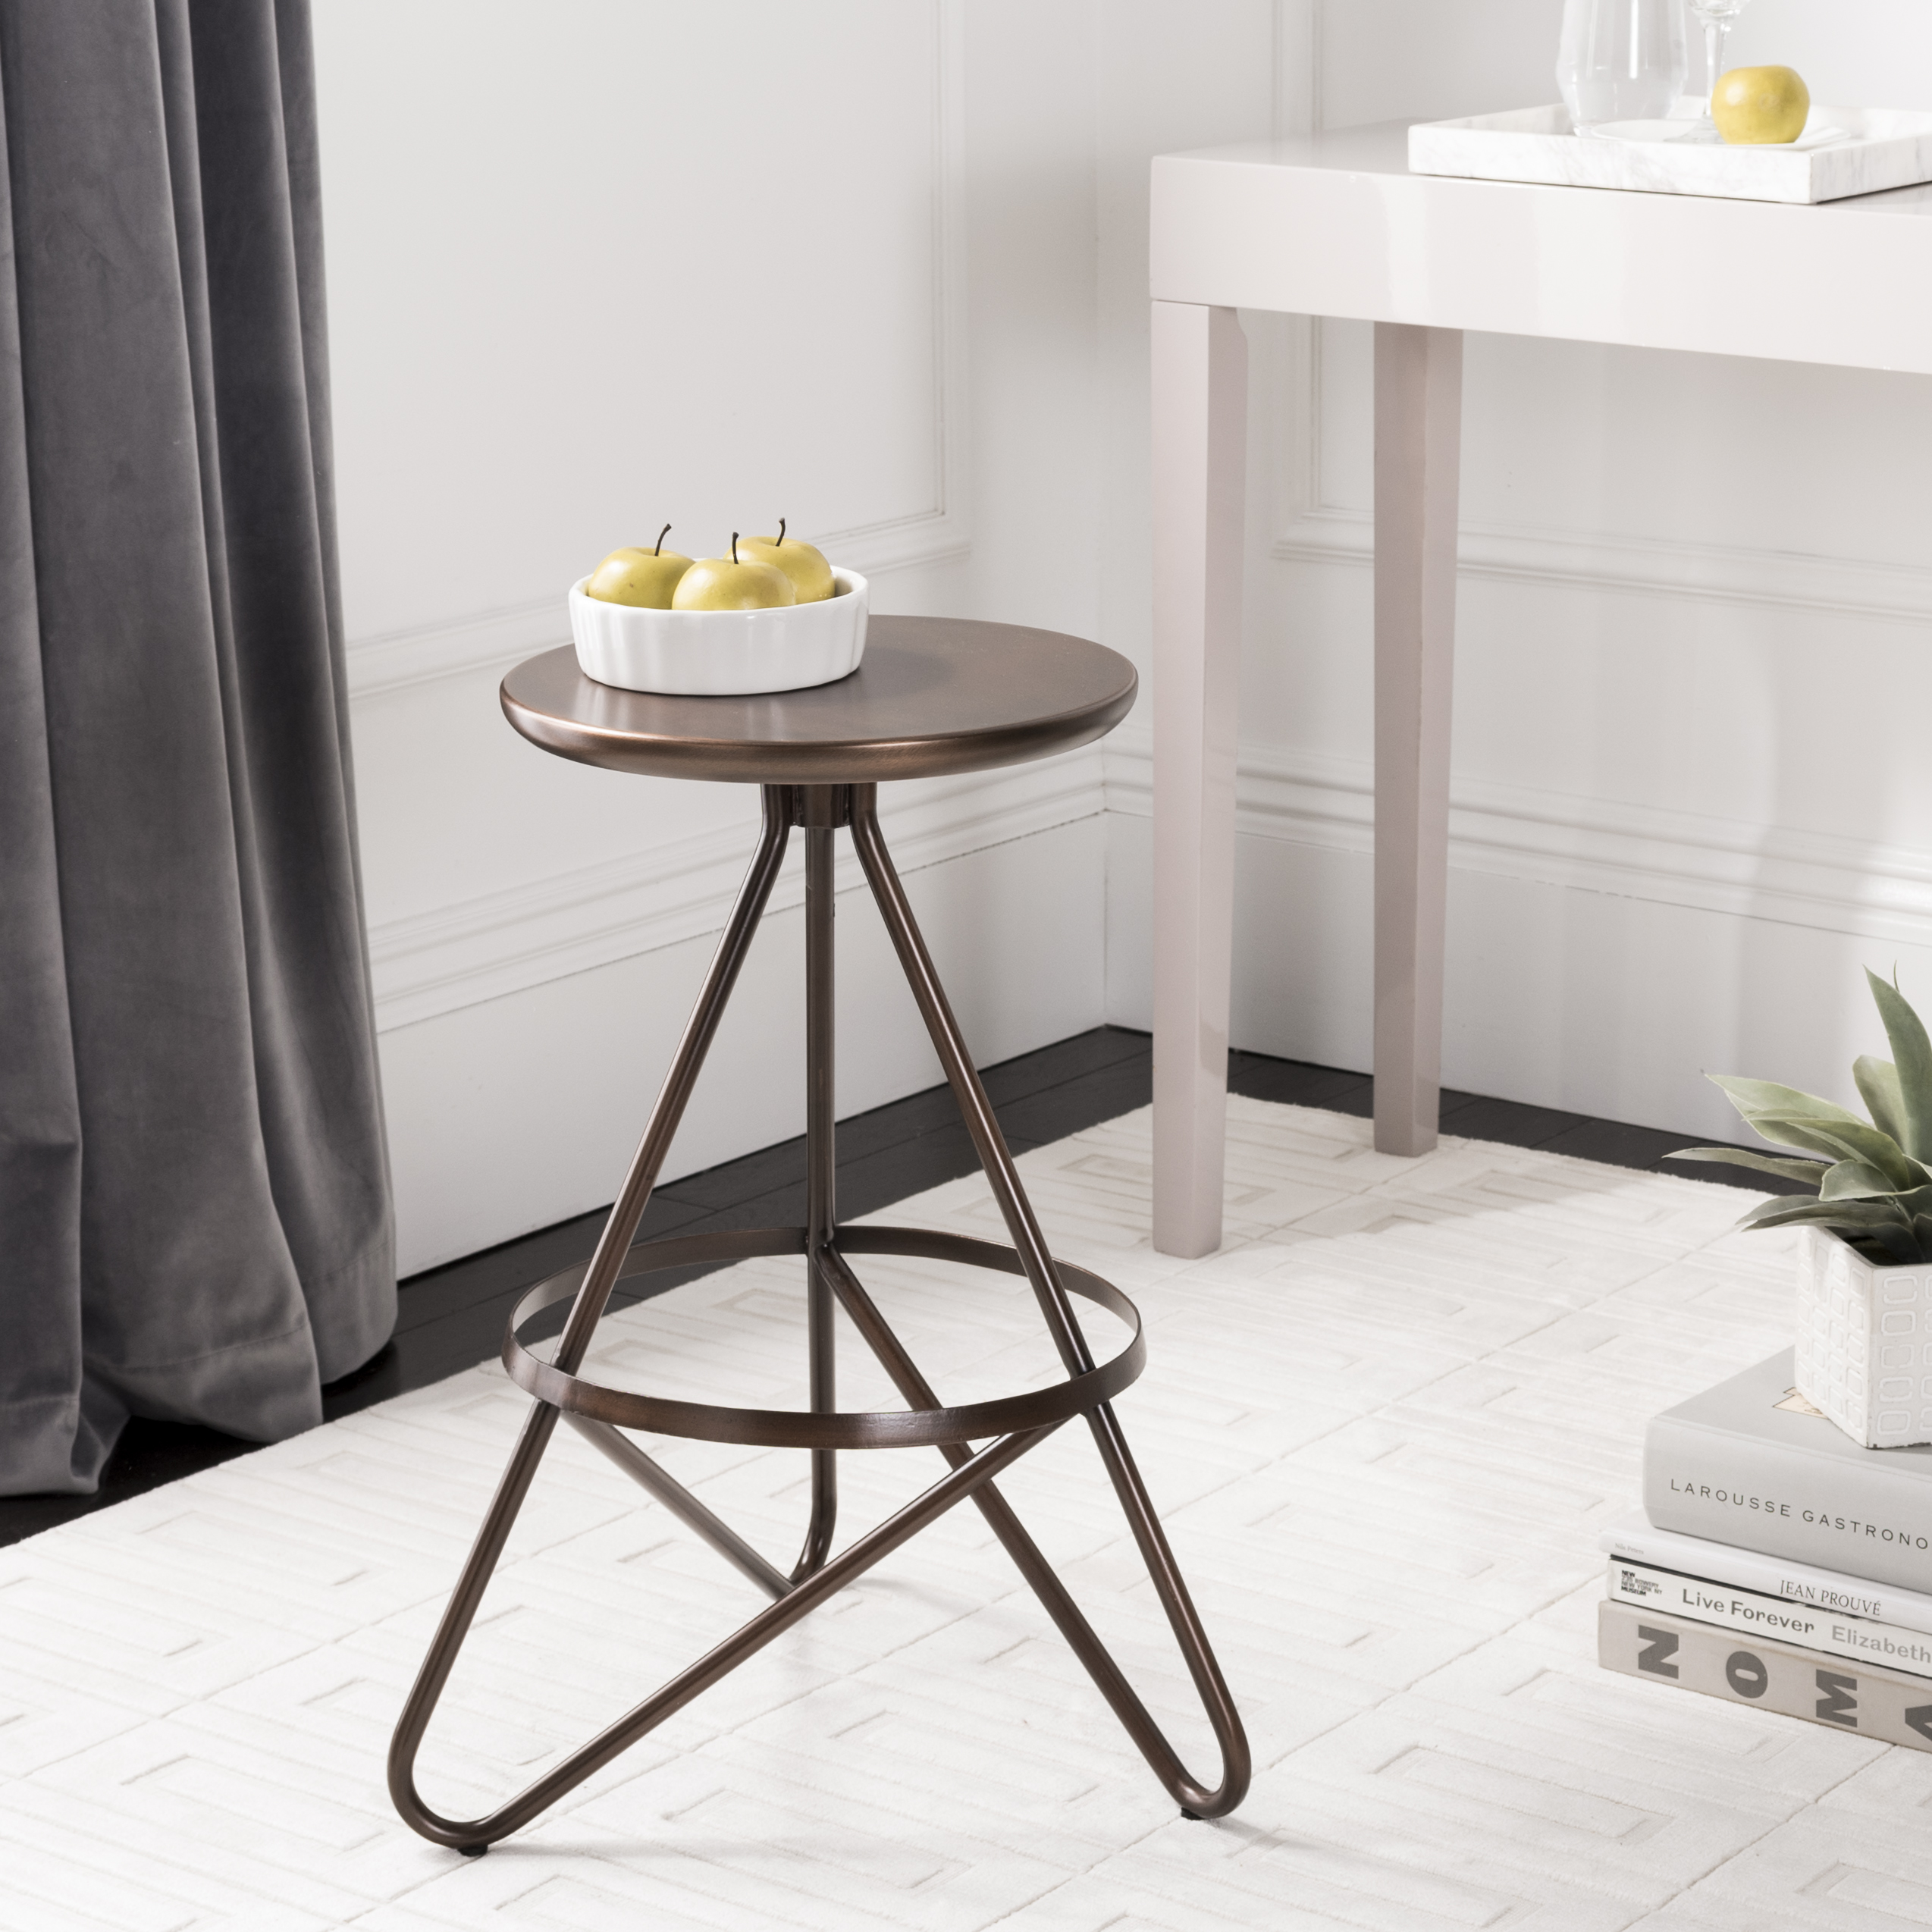 Safavieh Galexia Mid-Century Retro Metal Counter Stool